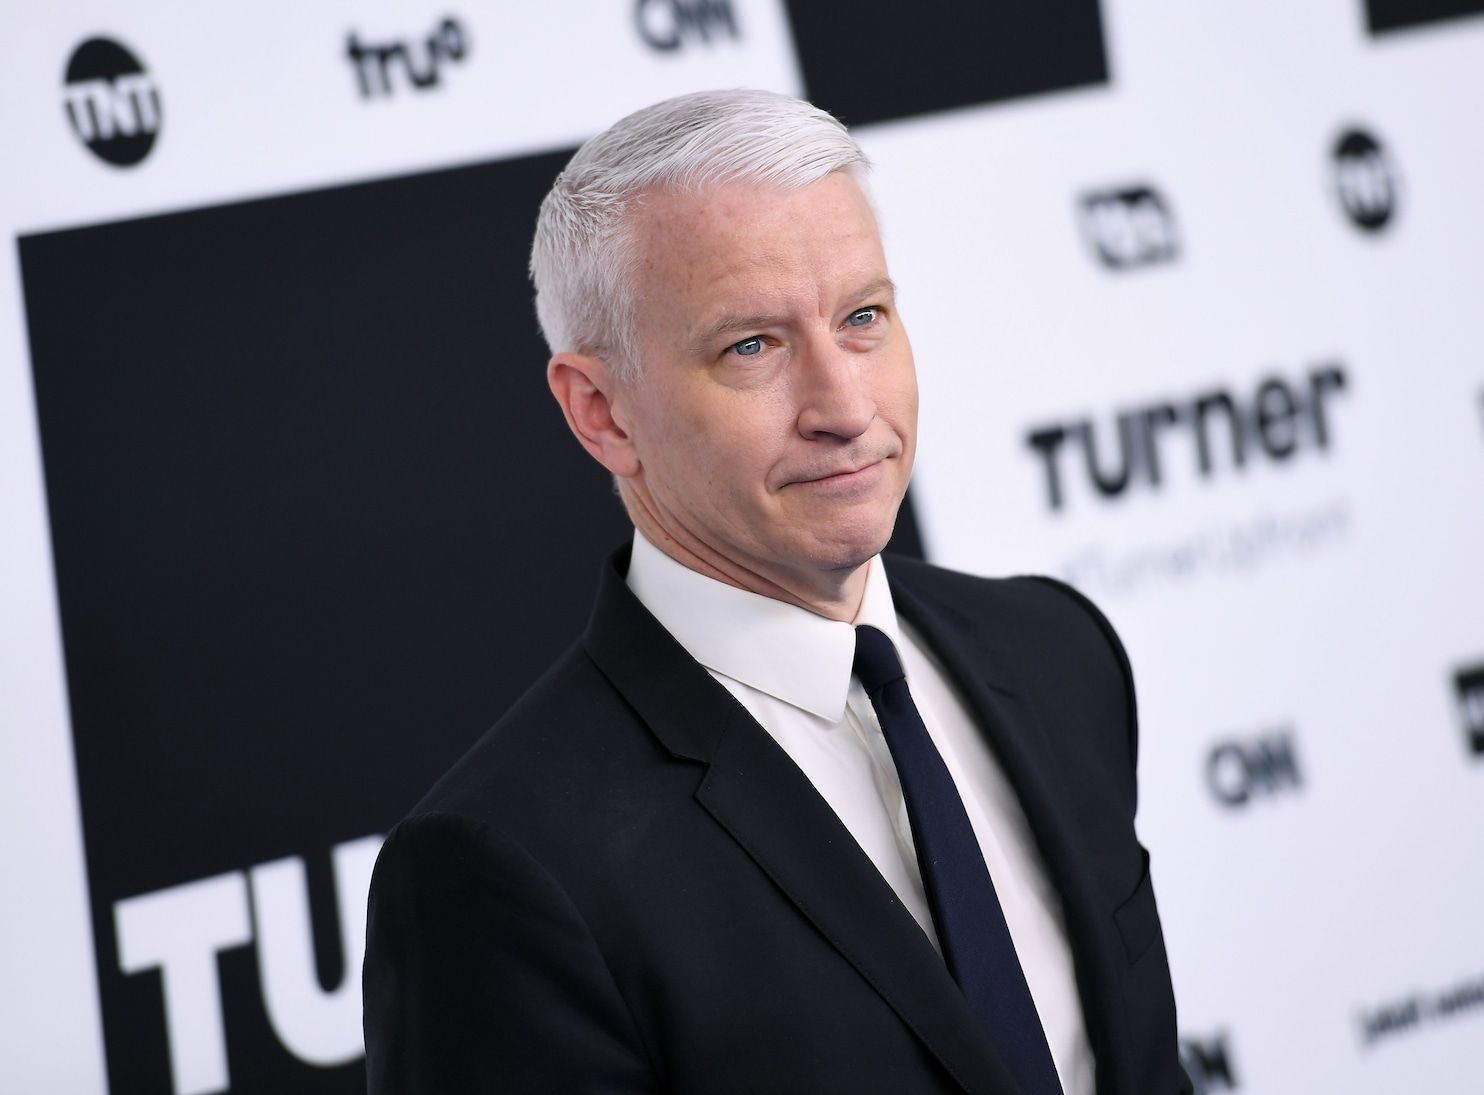 Anderson Cooper apologizes for conjuring image of Trump defecating on his desk